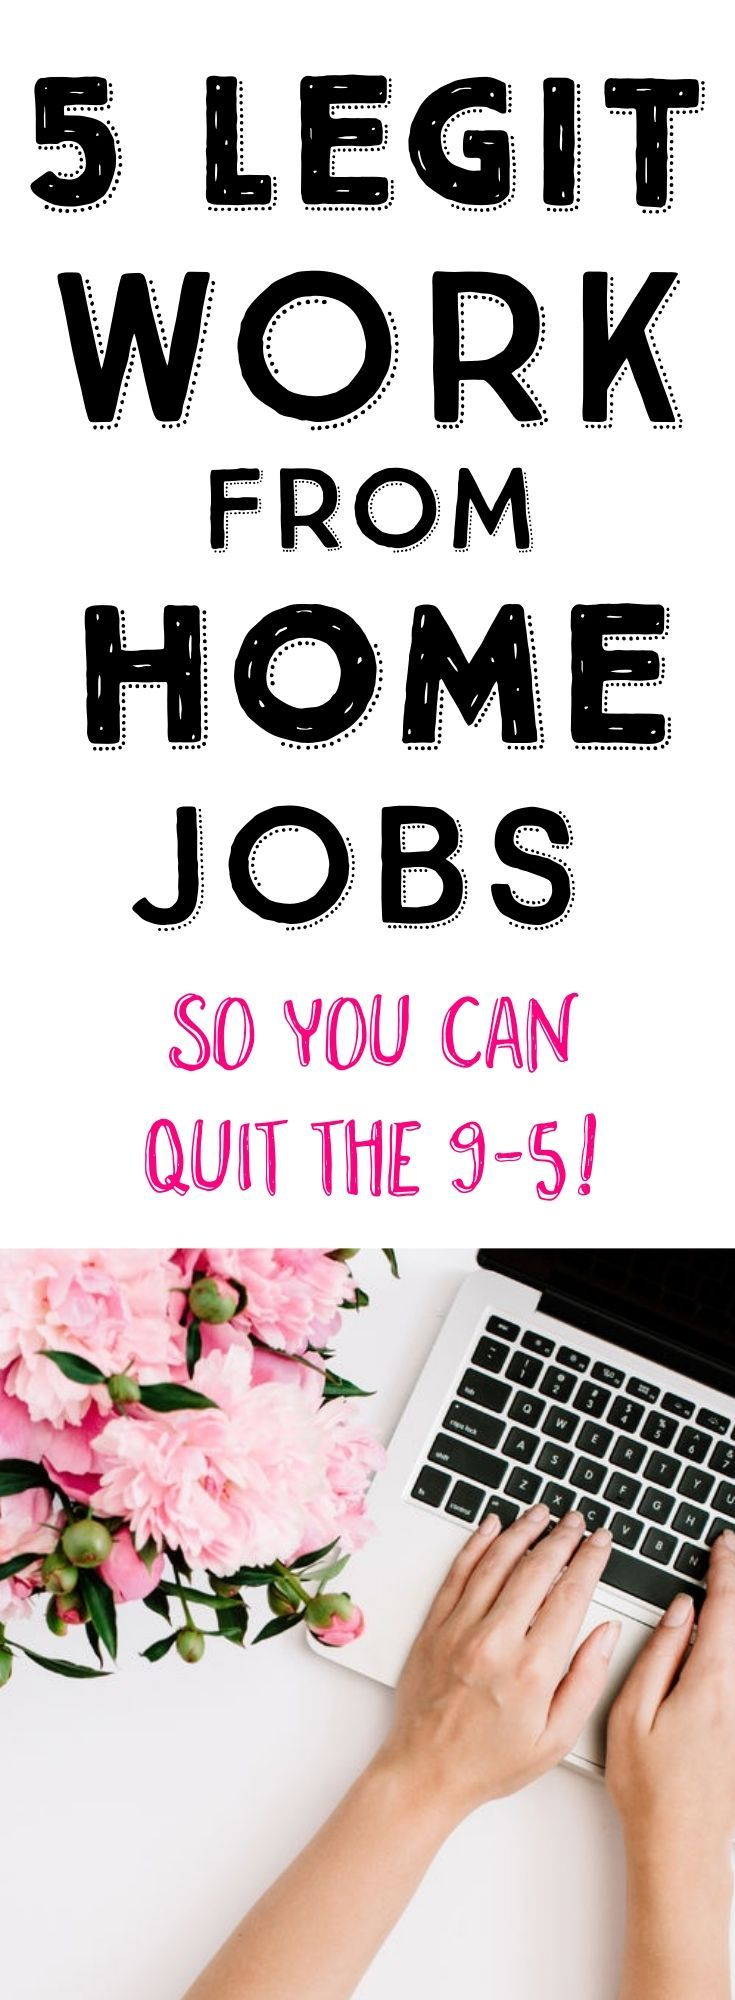 Five Tried Tested Ways To Make A Full Time Income Online Legit